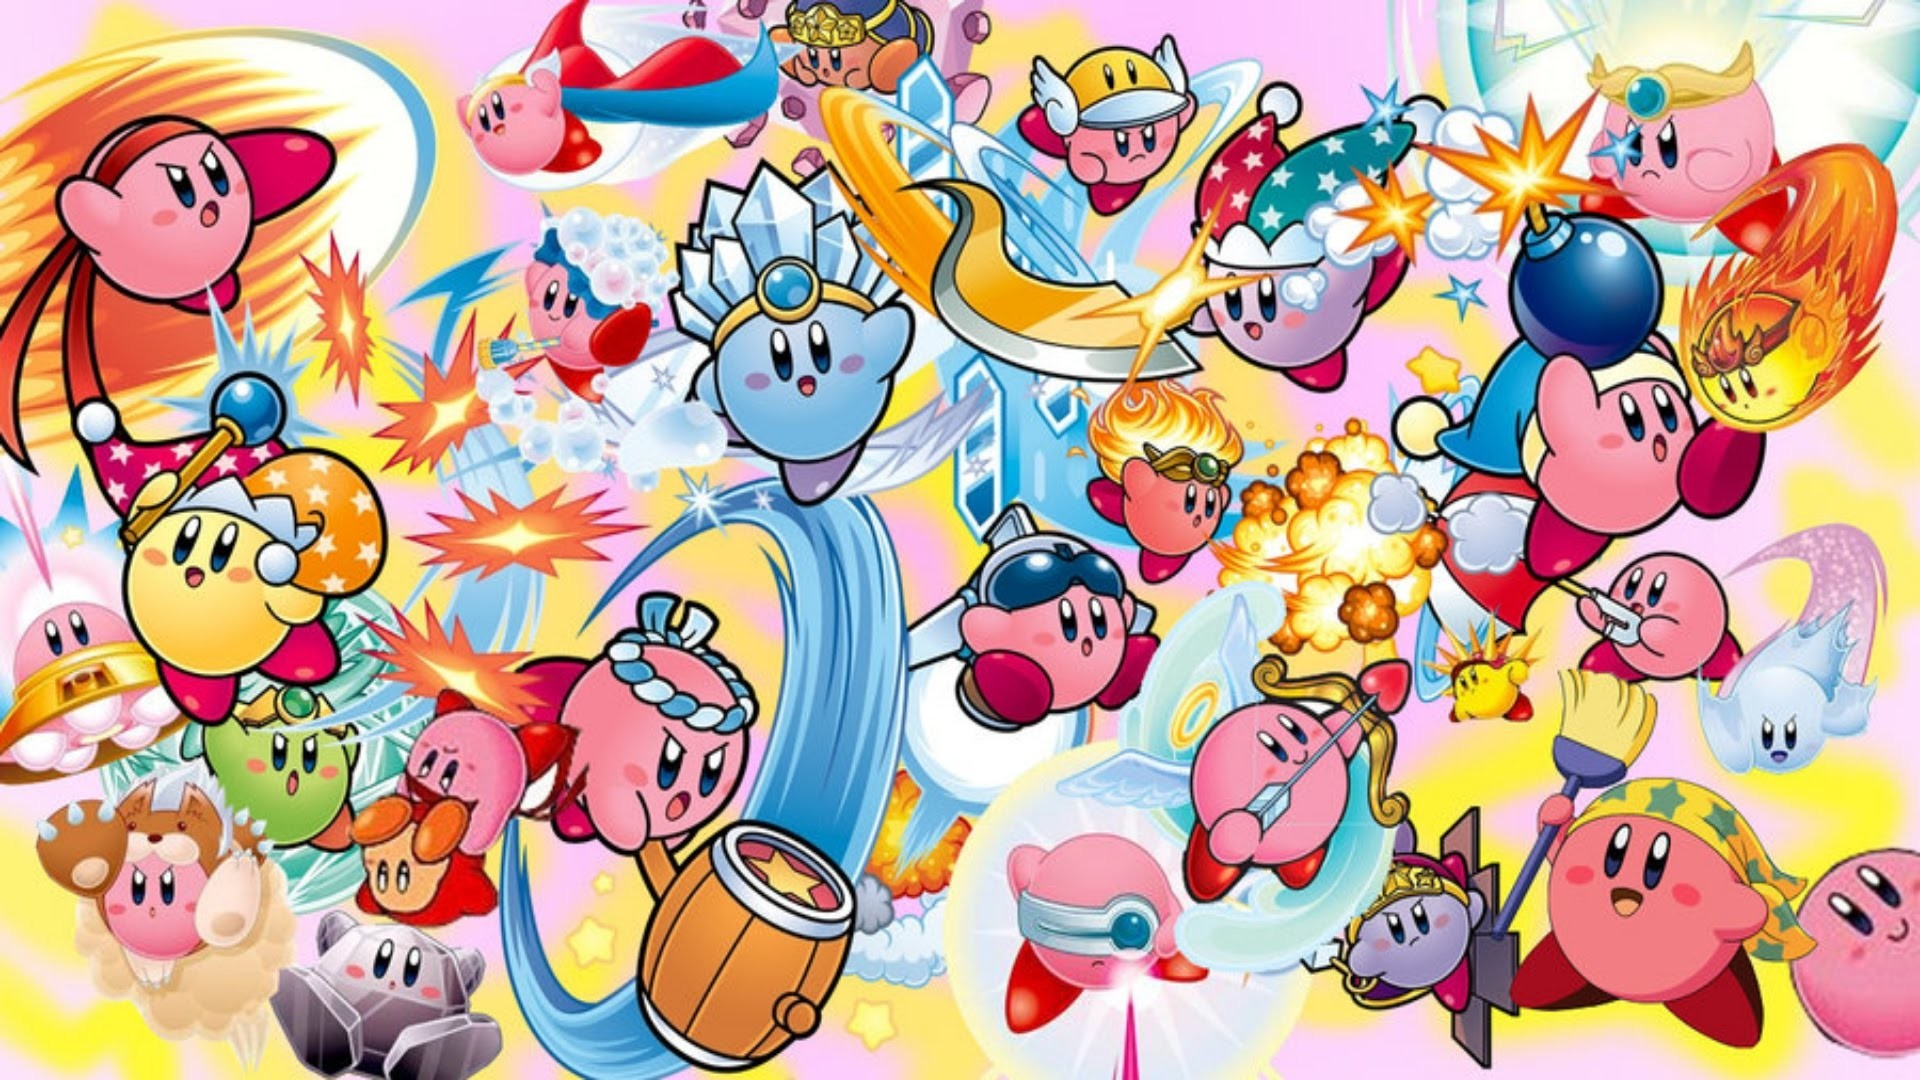 HD Kirby Wallpaper (69+ images)